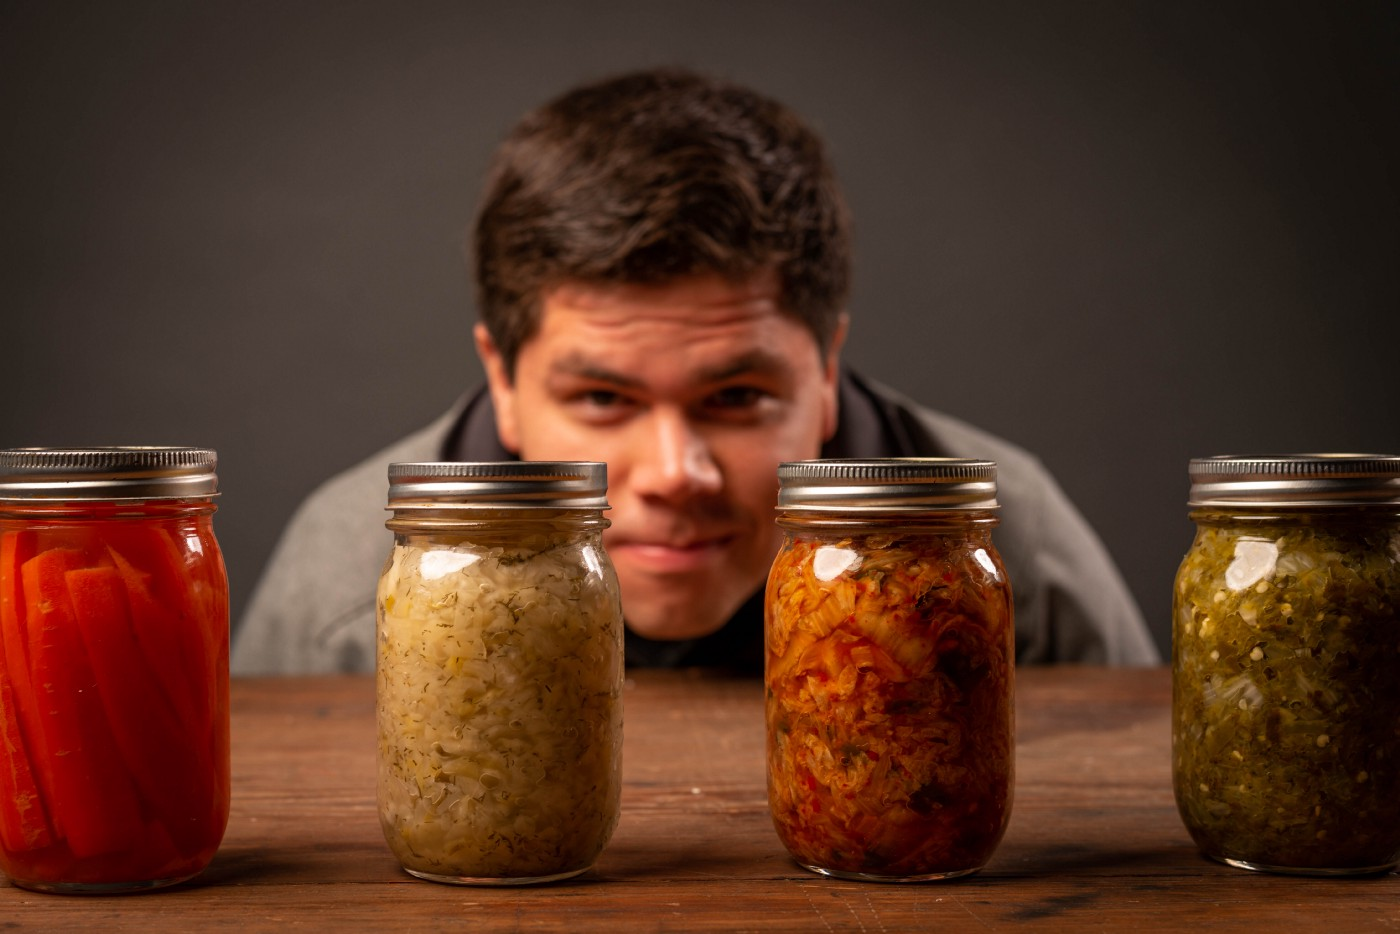 A man staring a four jars of pickles